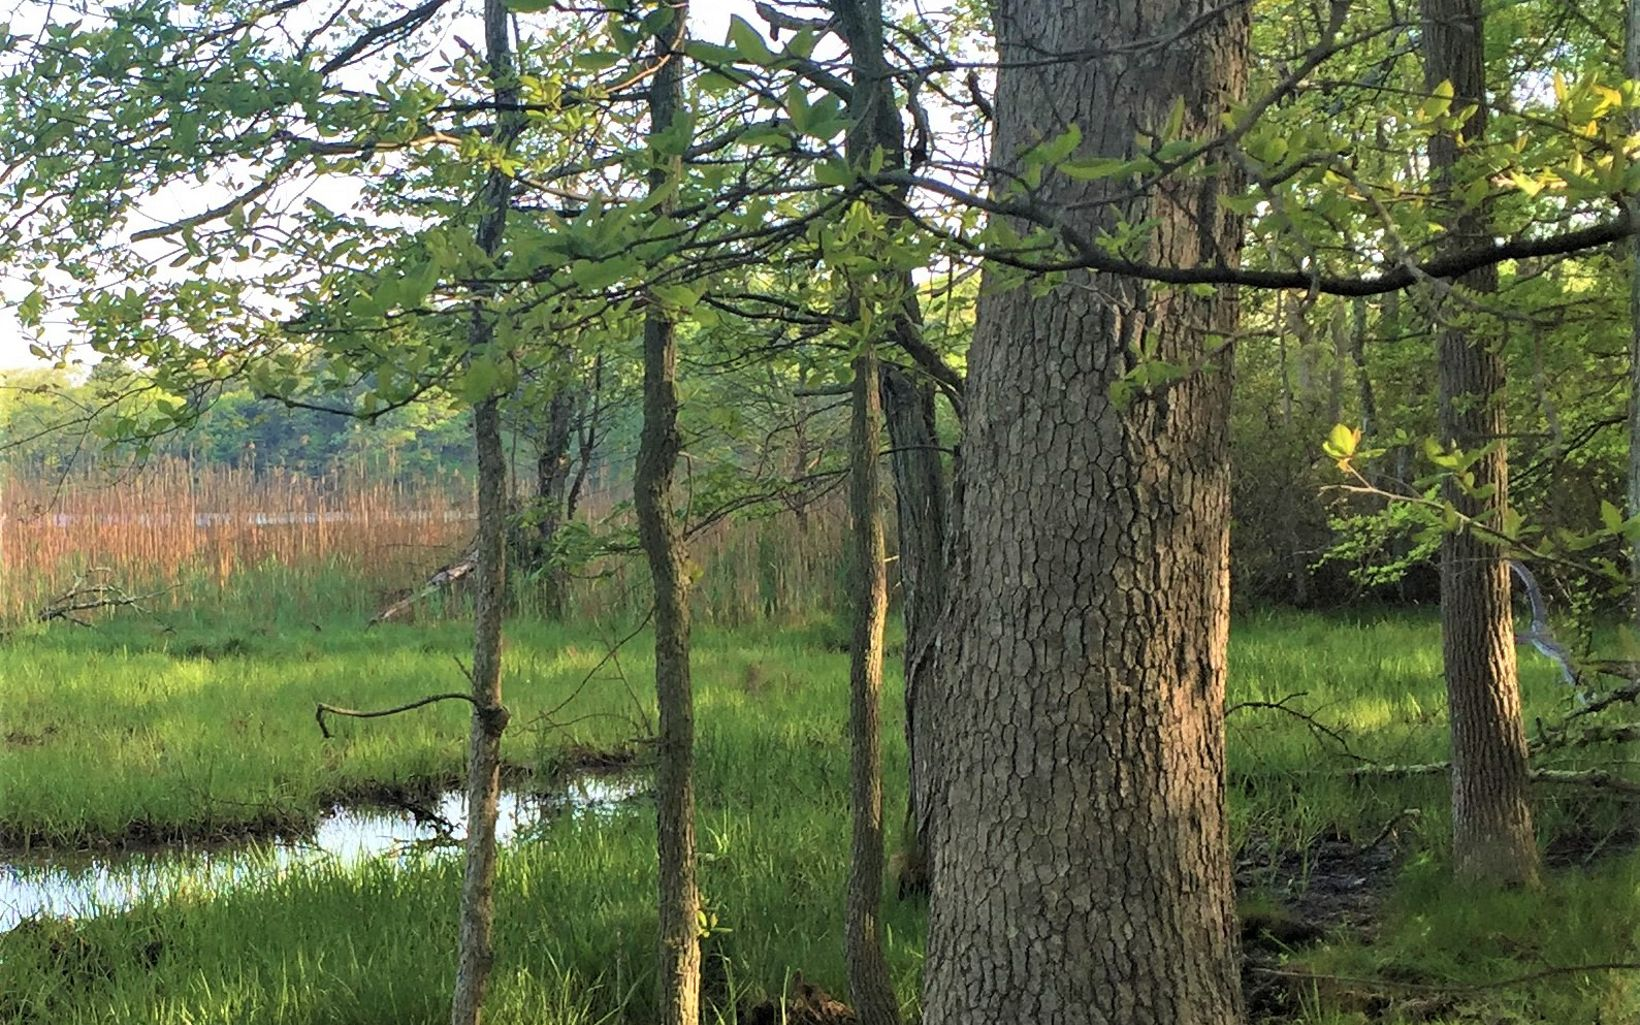 Looking through a stand of straight-trunked trees, with a green salt marsh in the background.